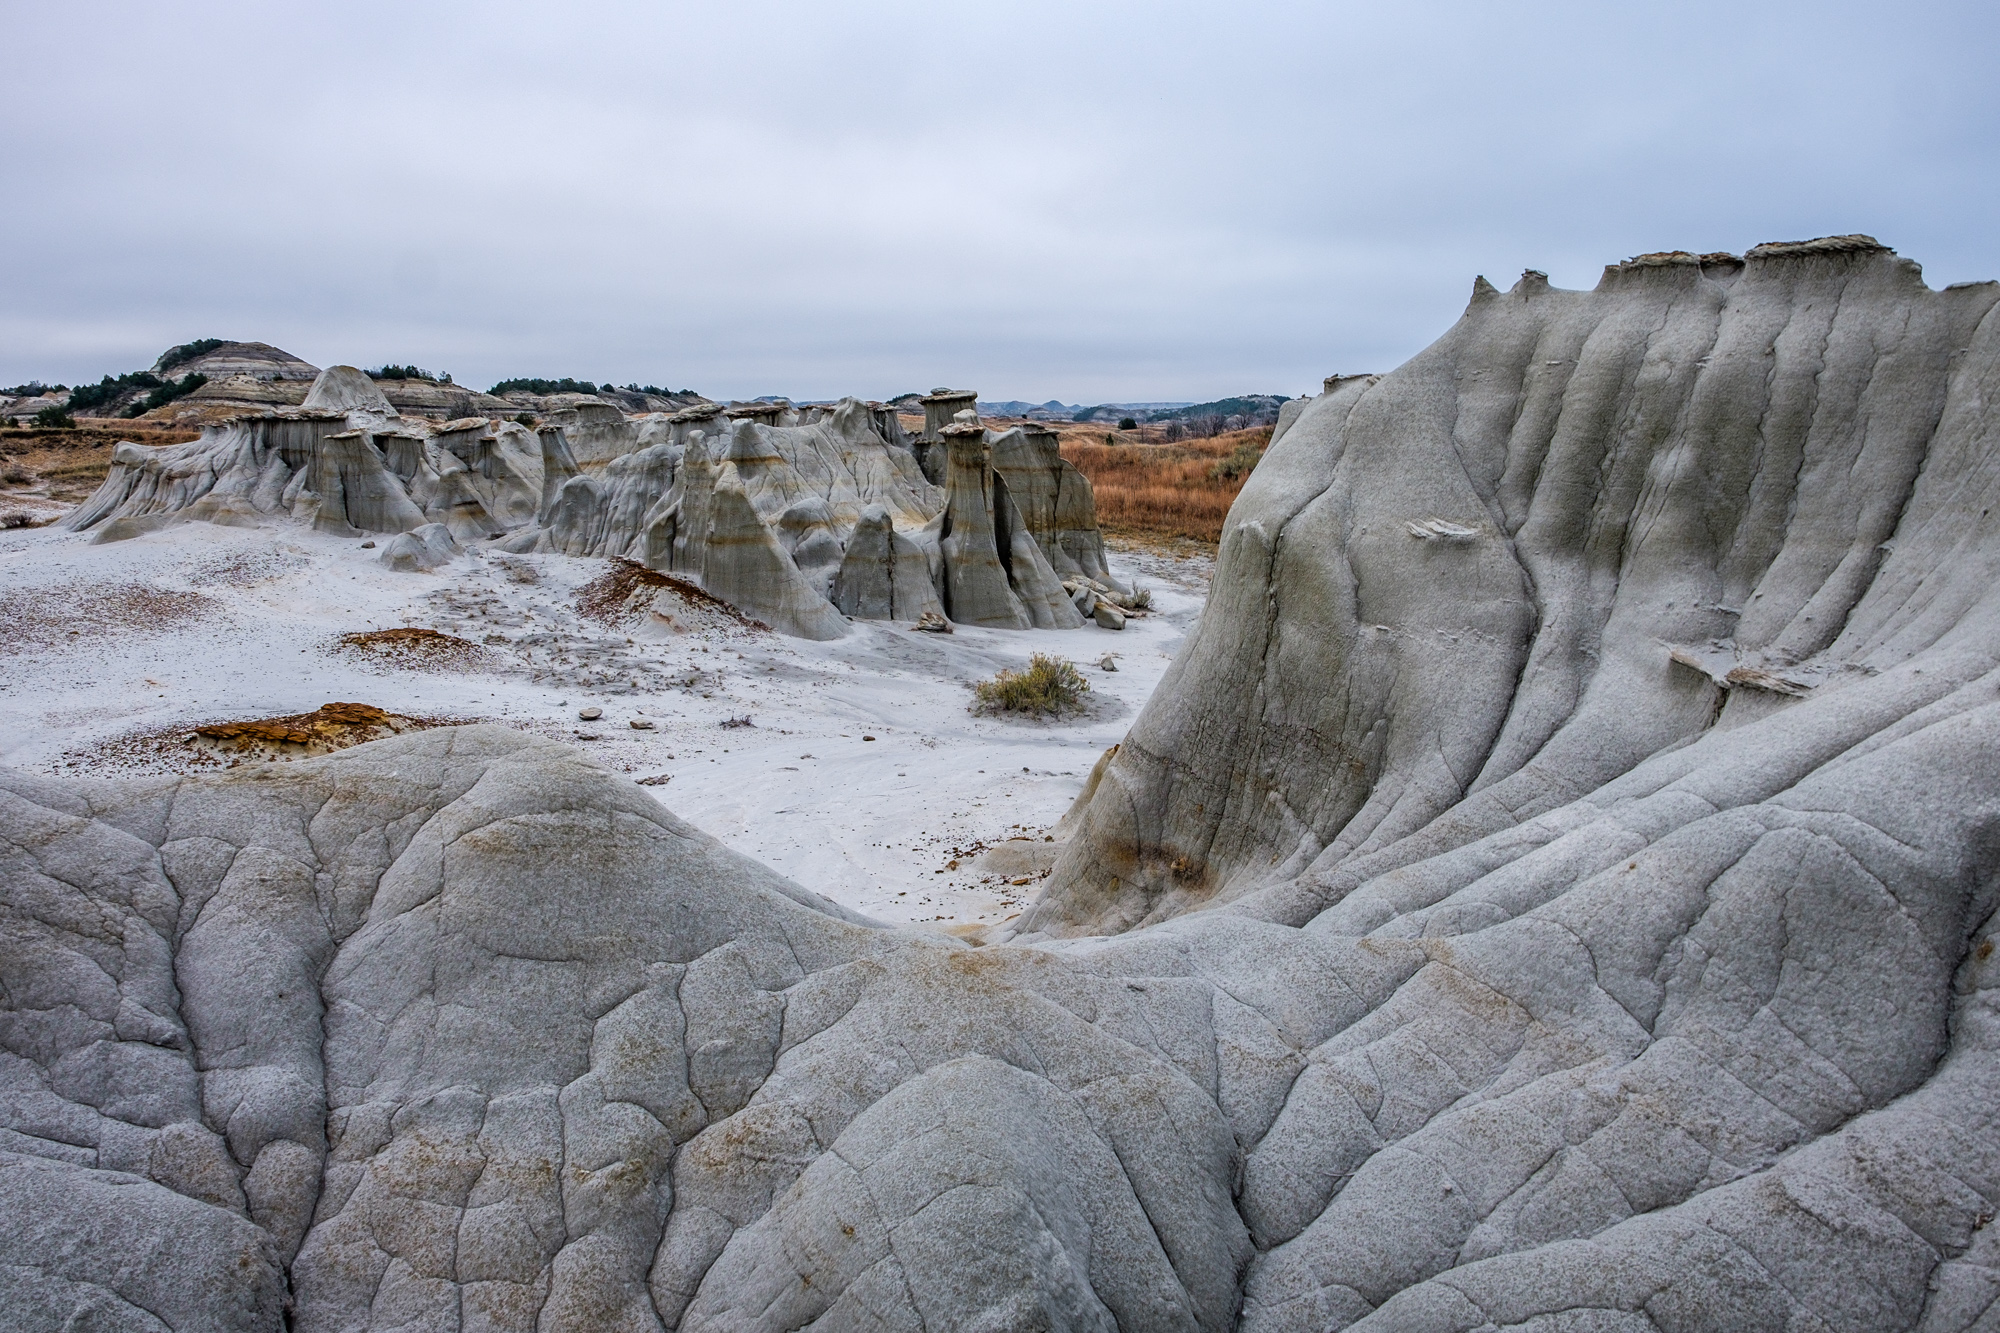 65-million year old badlands in the south unit.